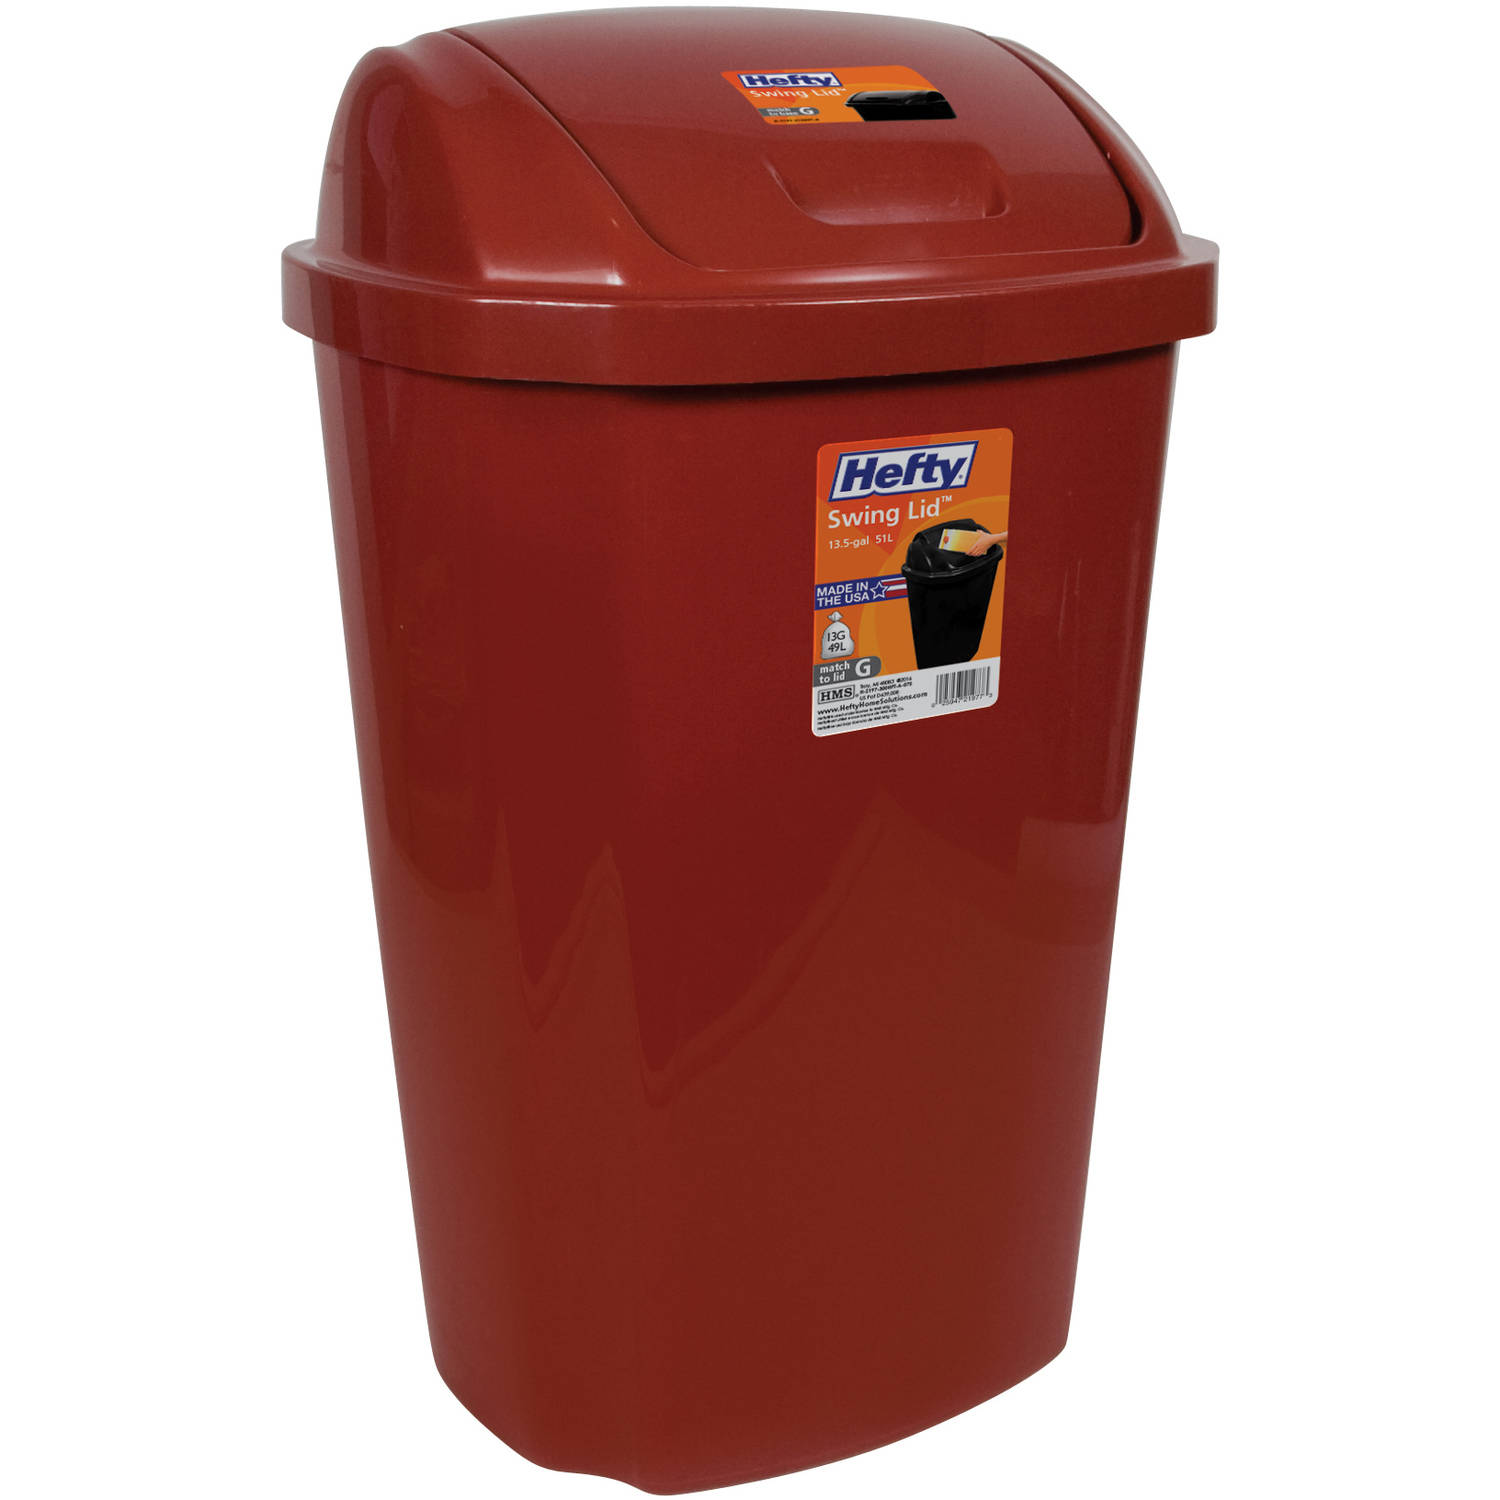 Kitchen Trash Can 13 5 Gallon Hefty Swing Lid Red Waste